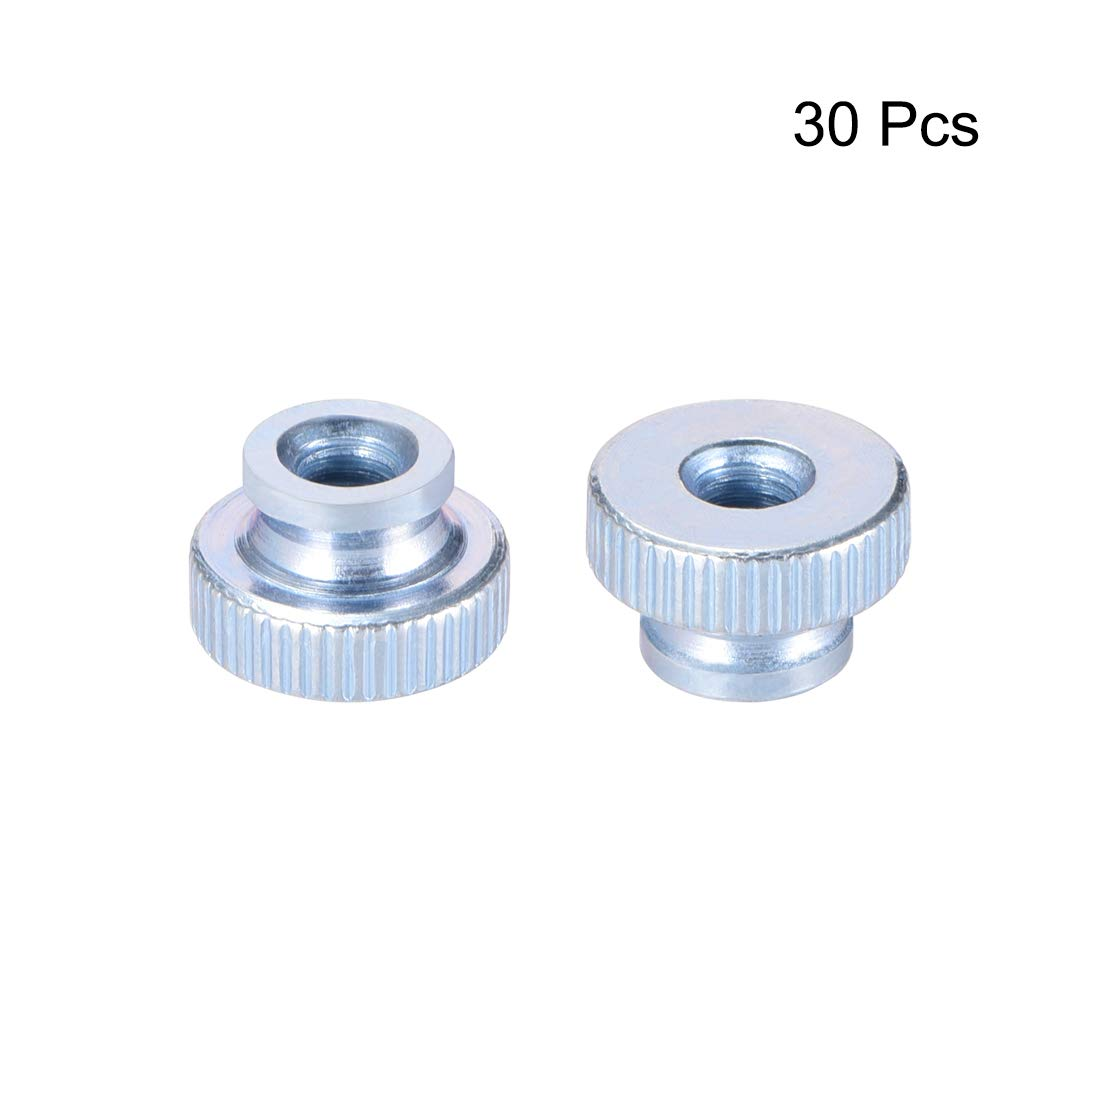 sourcing map Knurled Thumb Nuts Zinc Plating Pack of 10 M5 Round Knobs with Collar